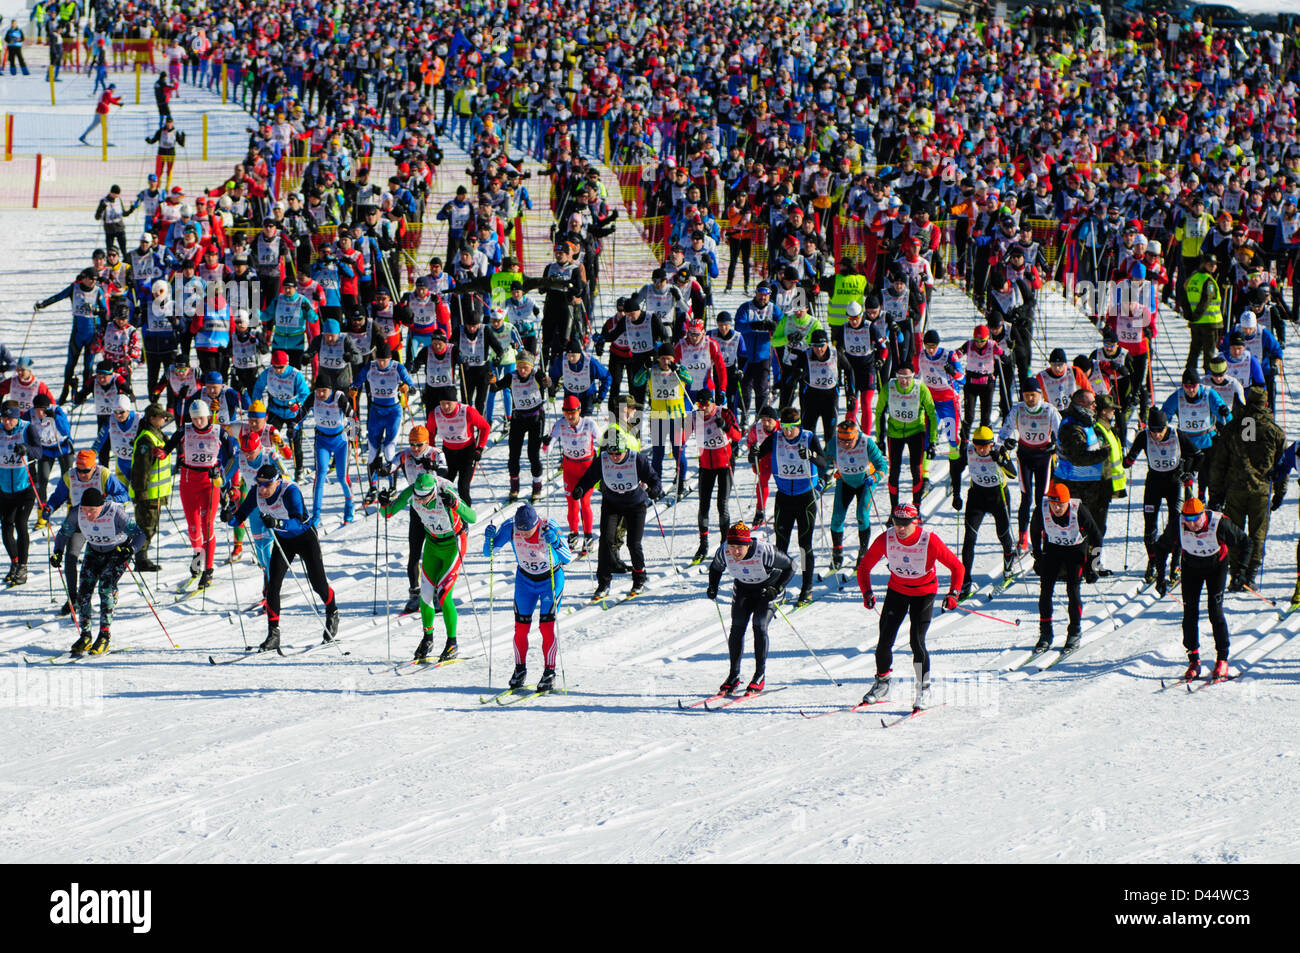 Participants during the Bieg Piastow cross-country race, Jakuszyce, Poland. - Stock Image